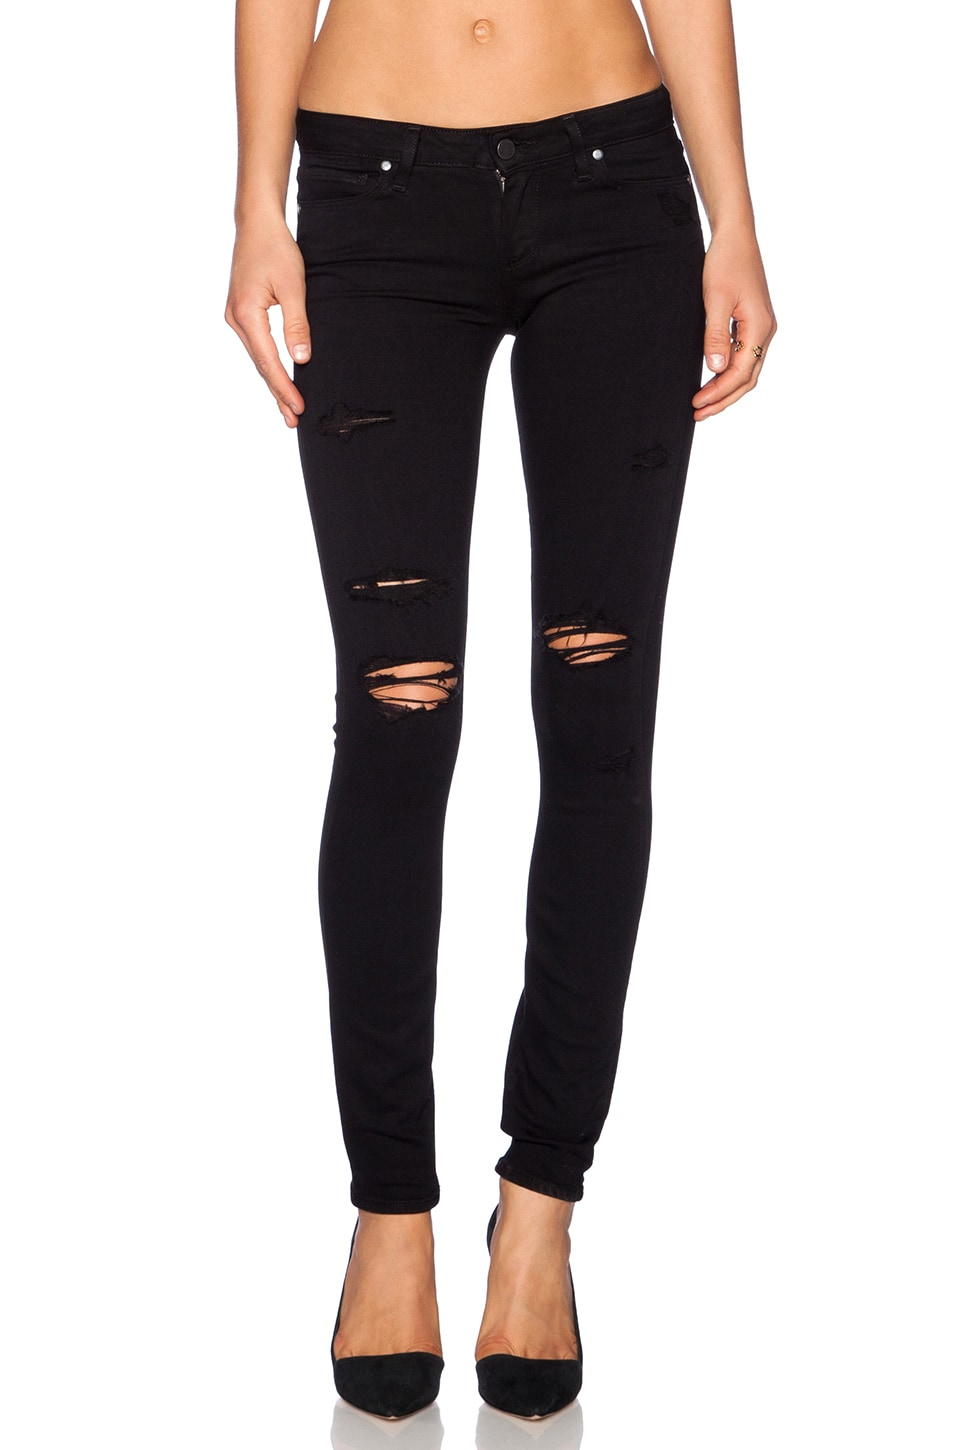 PAIGE Verdugo Ultra Skinny in Black Shadow Destructed | REVOLVE